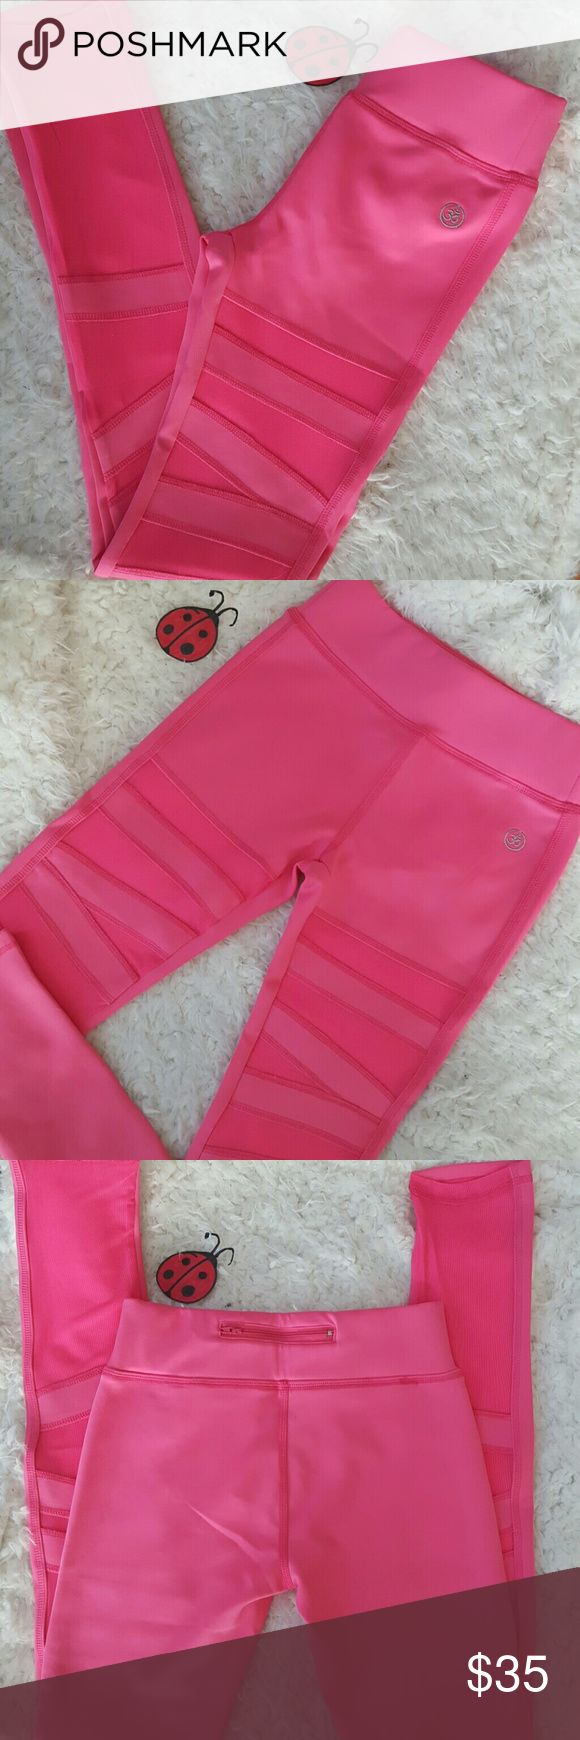 Nrw pink mesh ballerina style yoga leggings Awesome NEW pink mesh ballerina style workout leggings in a size small, small back zip pocket.  Perfect for the gym, yoga, running , weight lifting.  Leggings are stretchy but run two sizes smaller. Pants Leggings